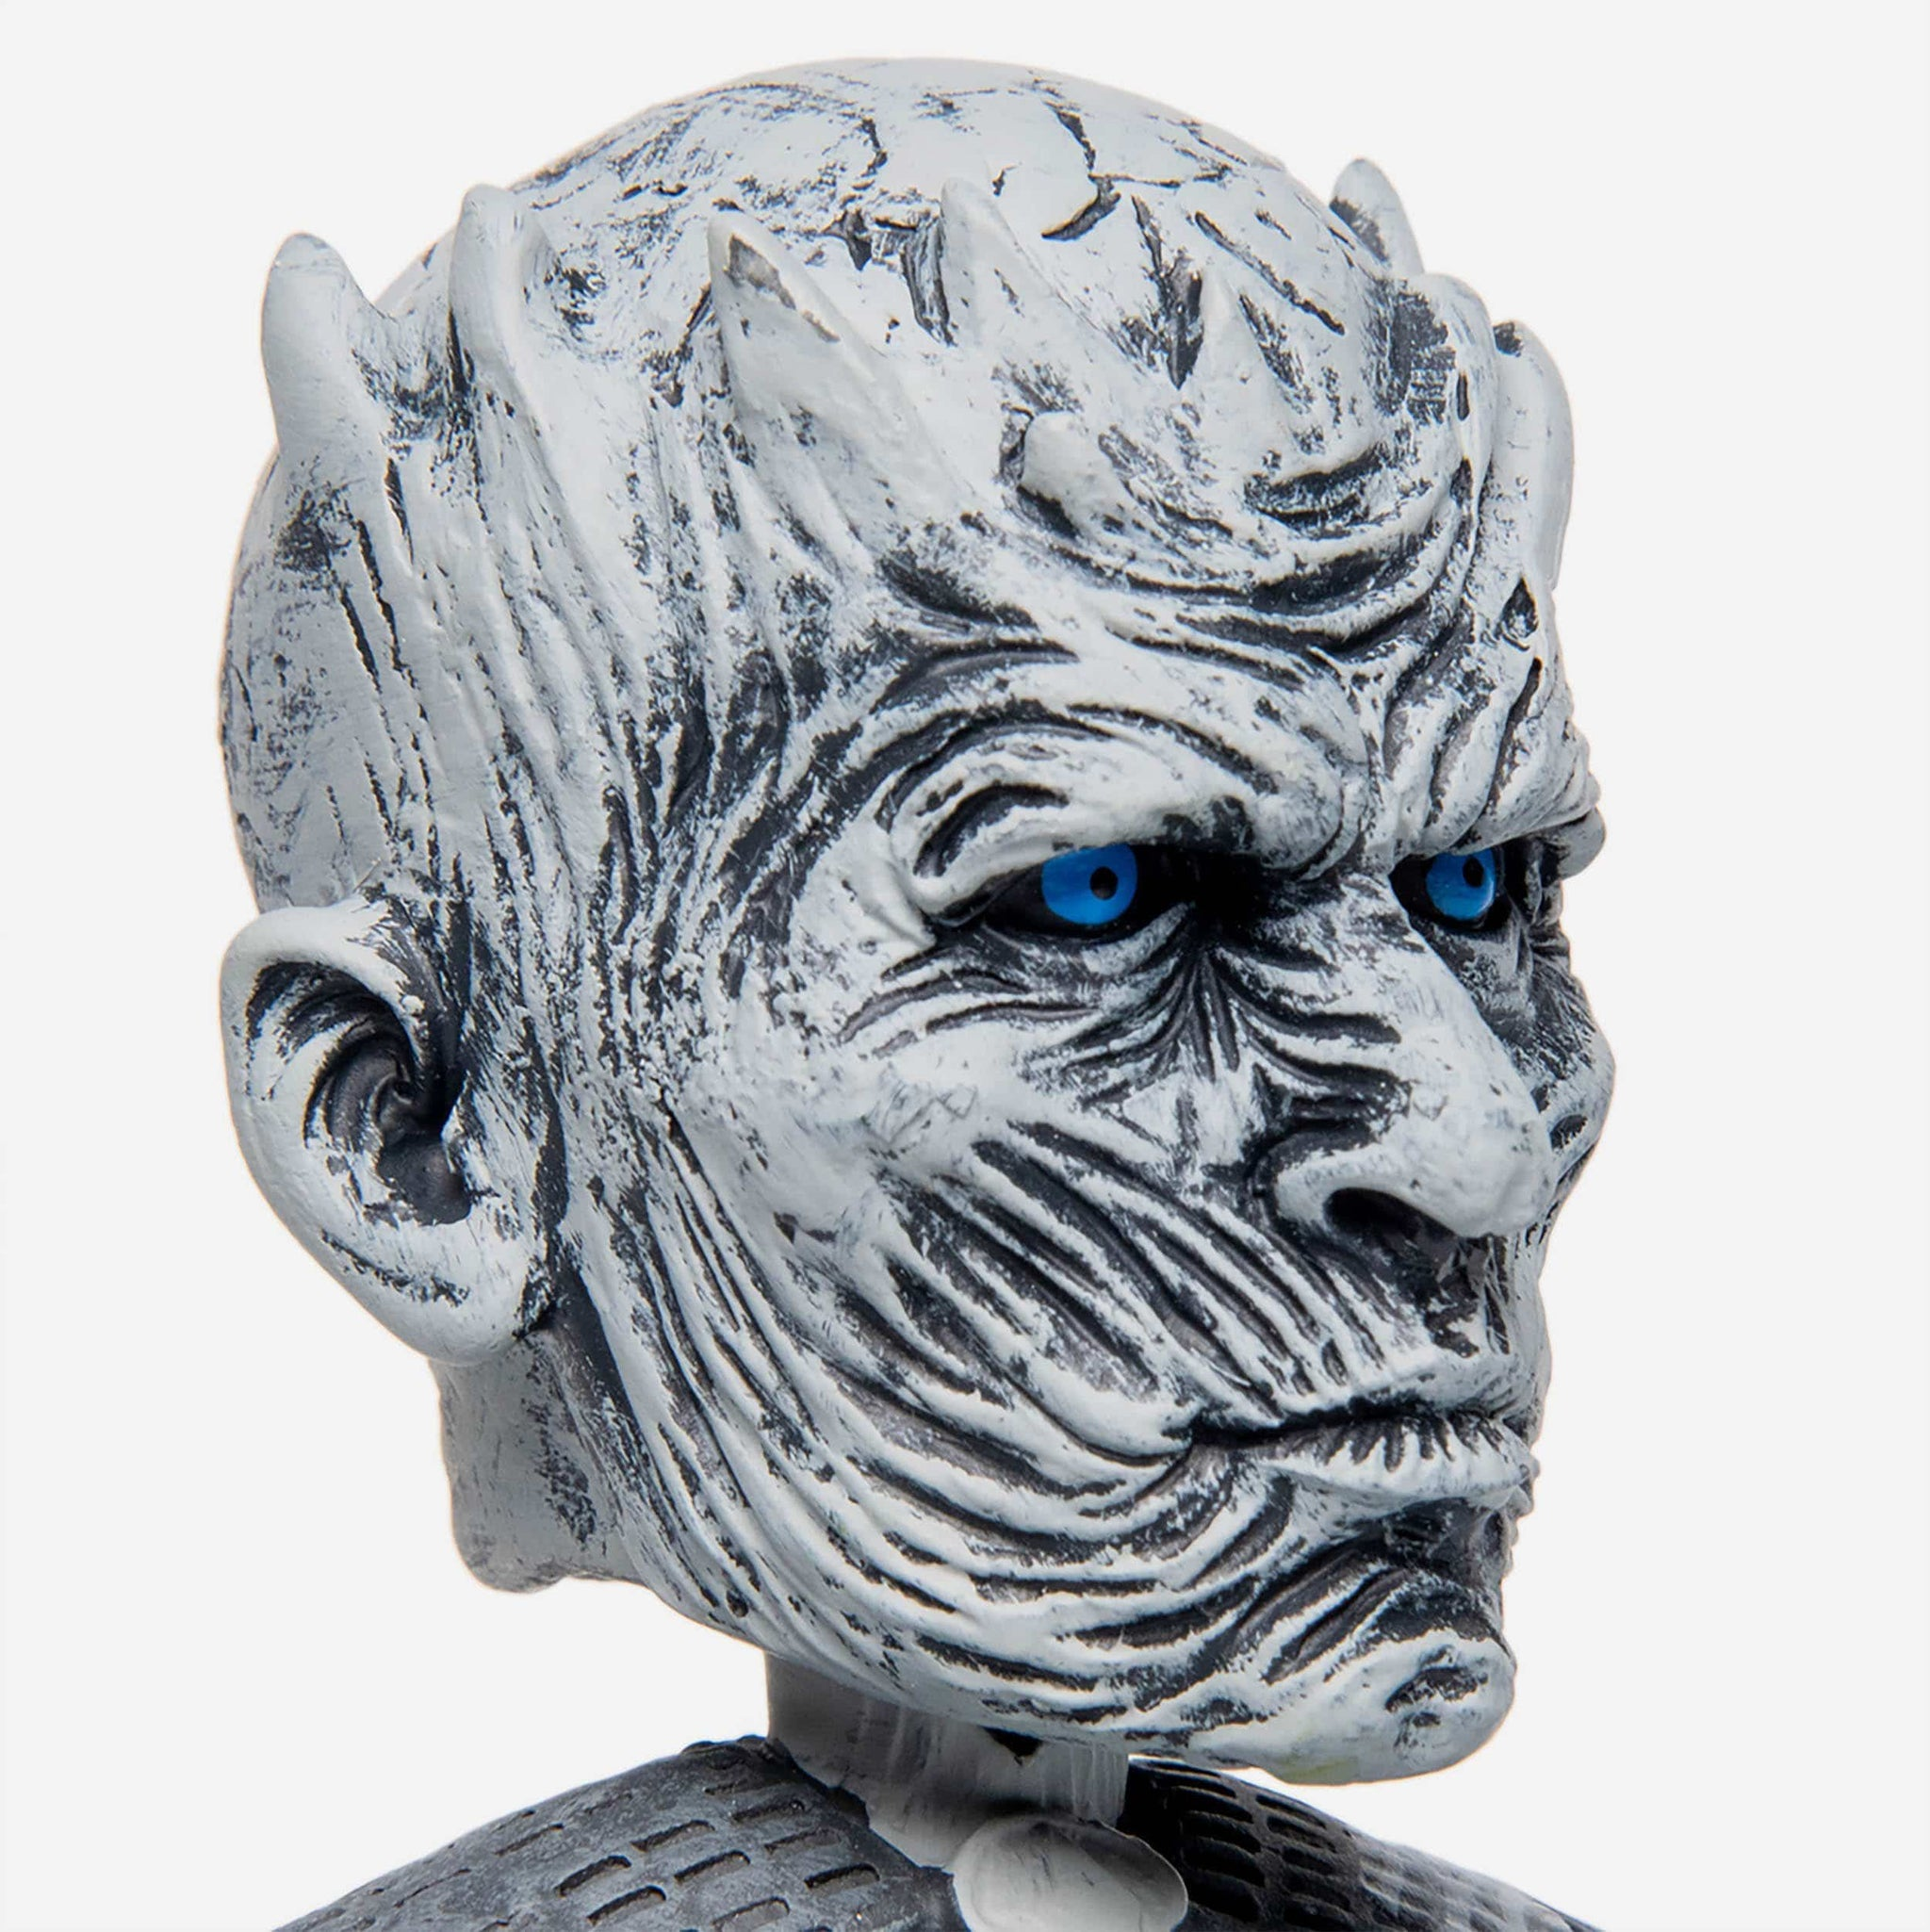 New York Yankees Game Of Thrones Night King Bobblehead FOCO - FOCO.com